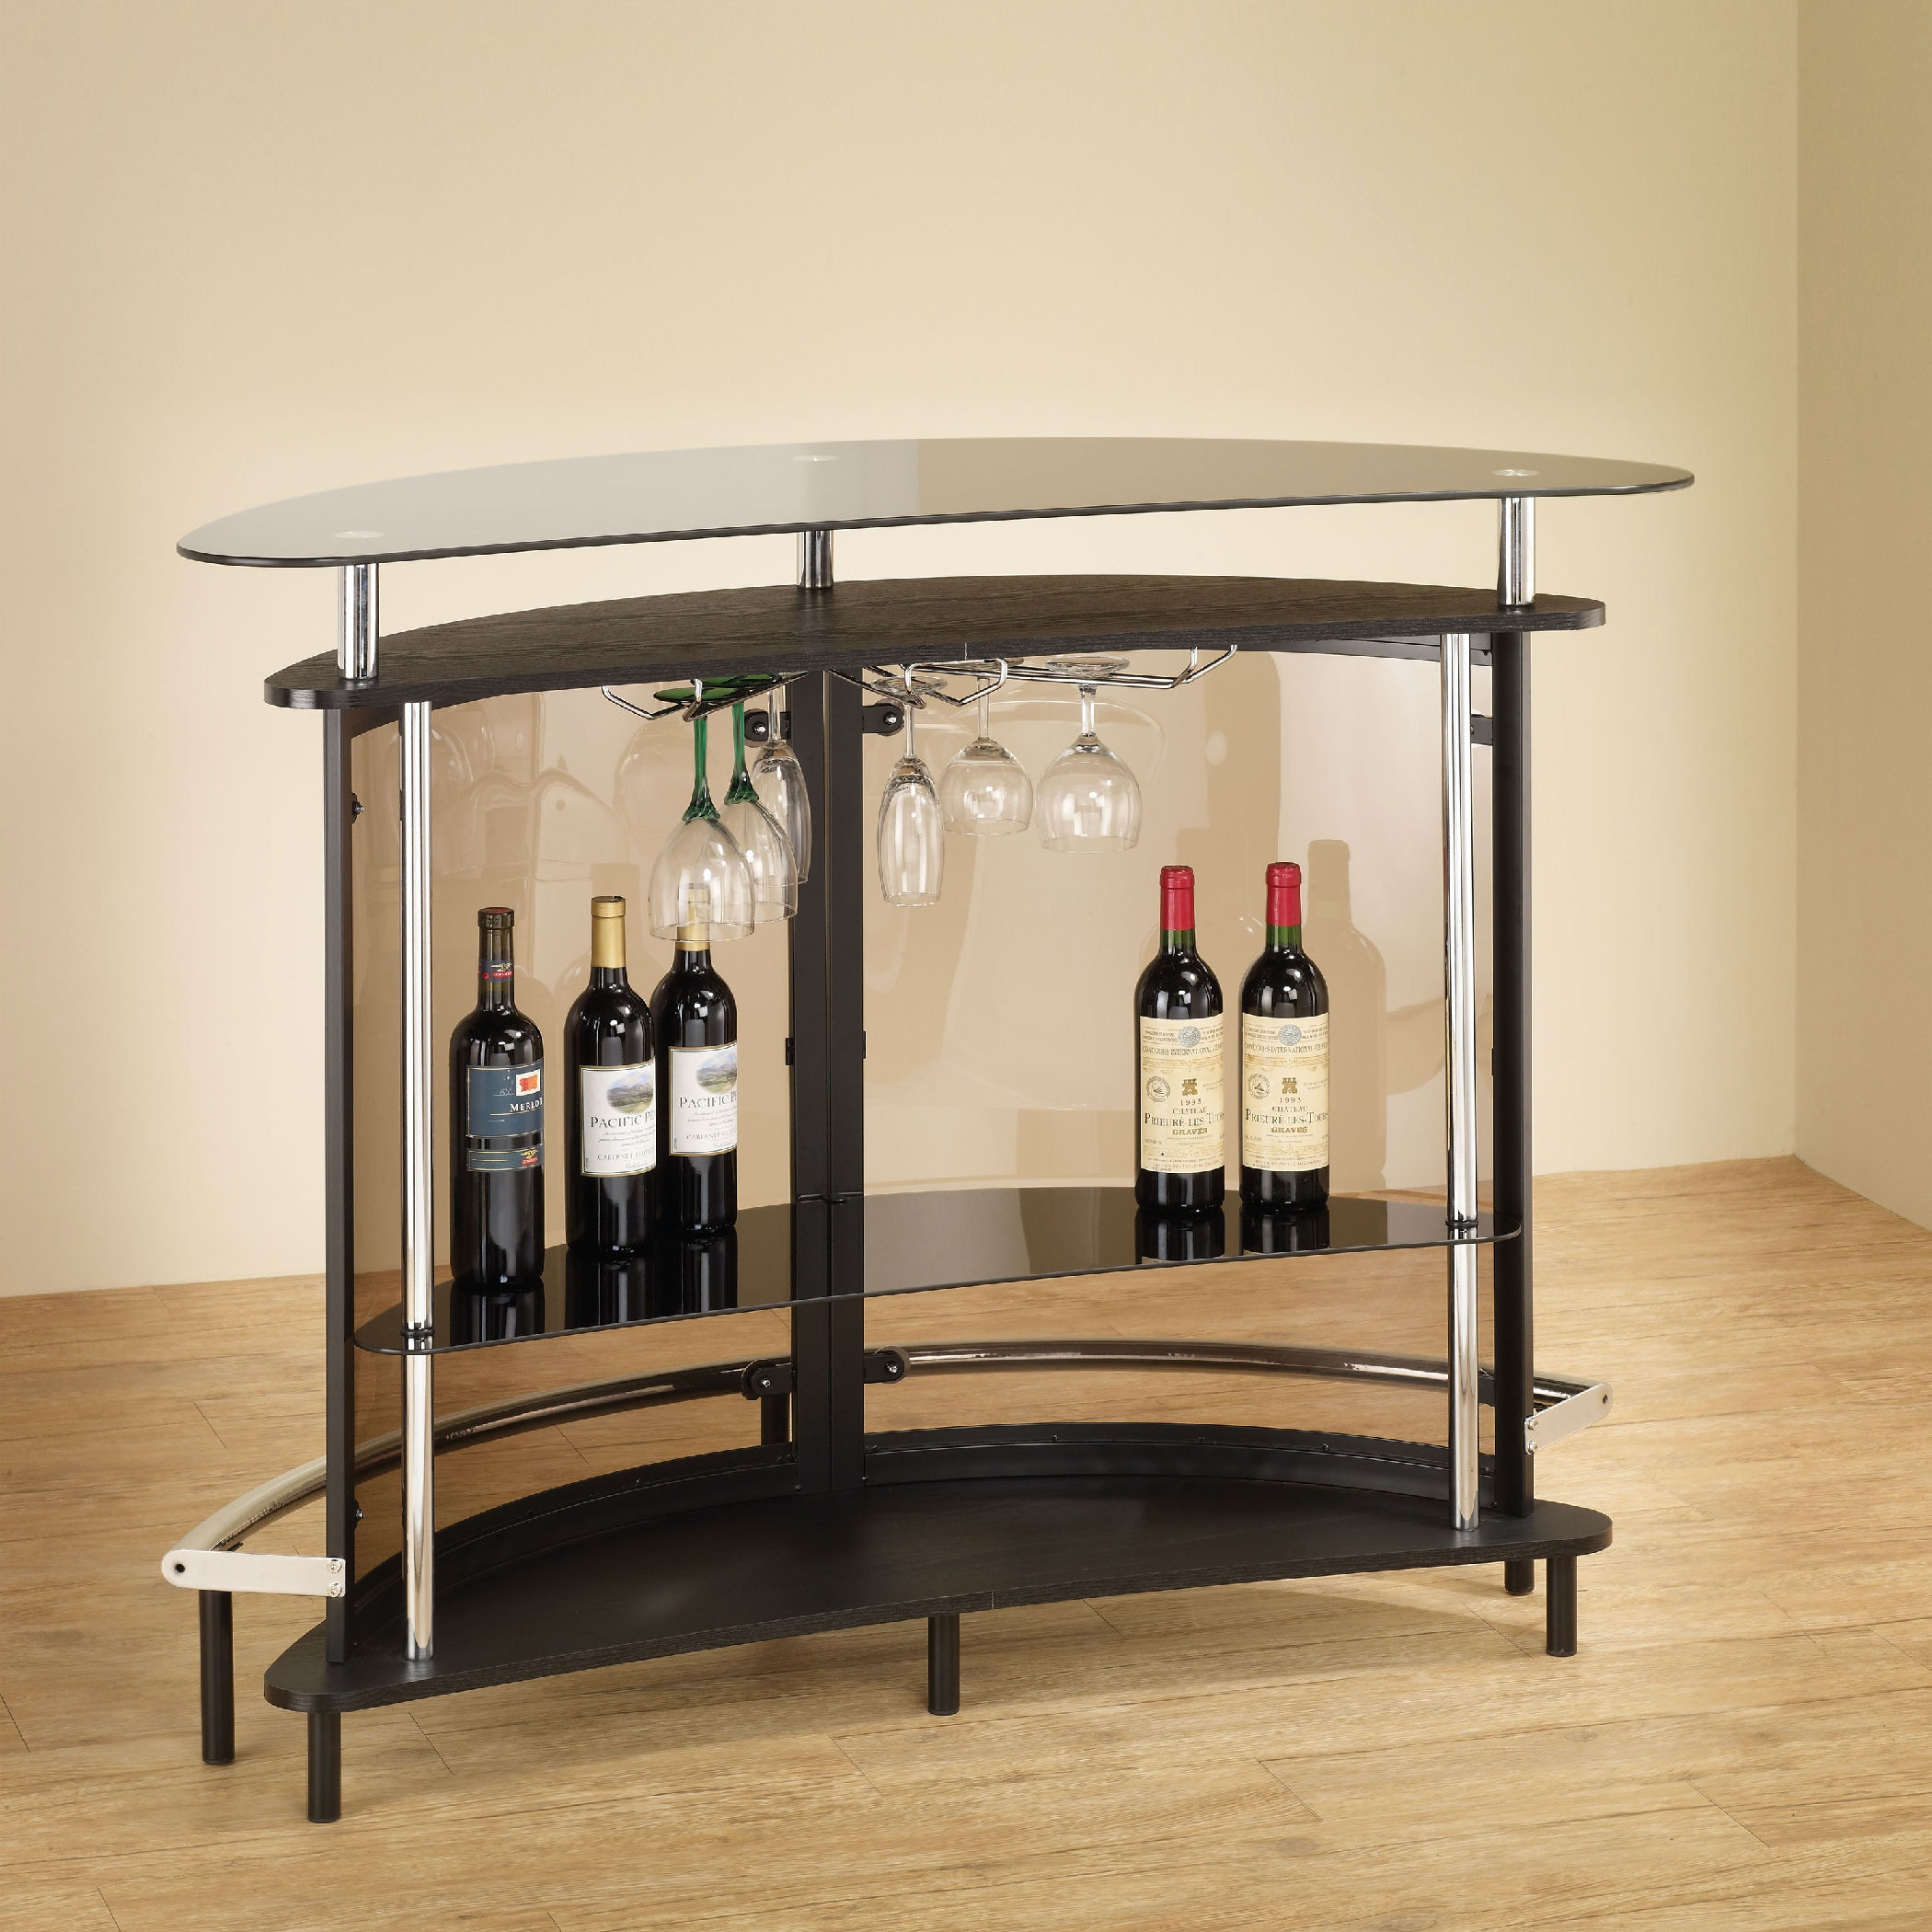 Charmant Coaster Bar Units And Bar Tables Contemporary Bar Unit With Smoked Acrylic  Front 101065